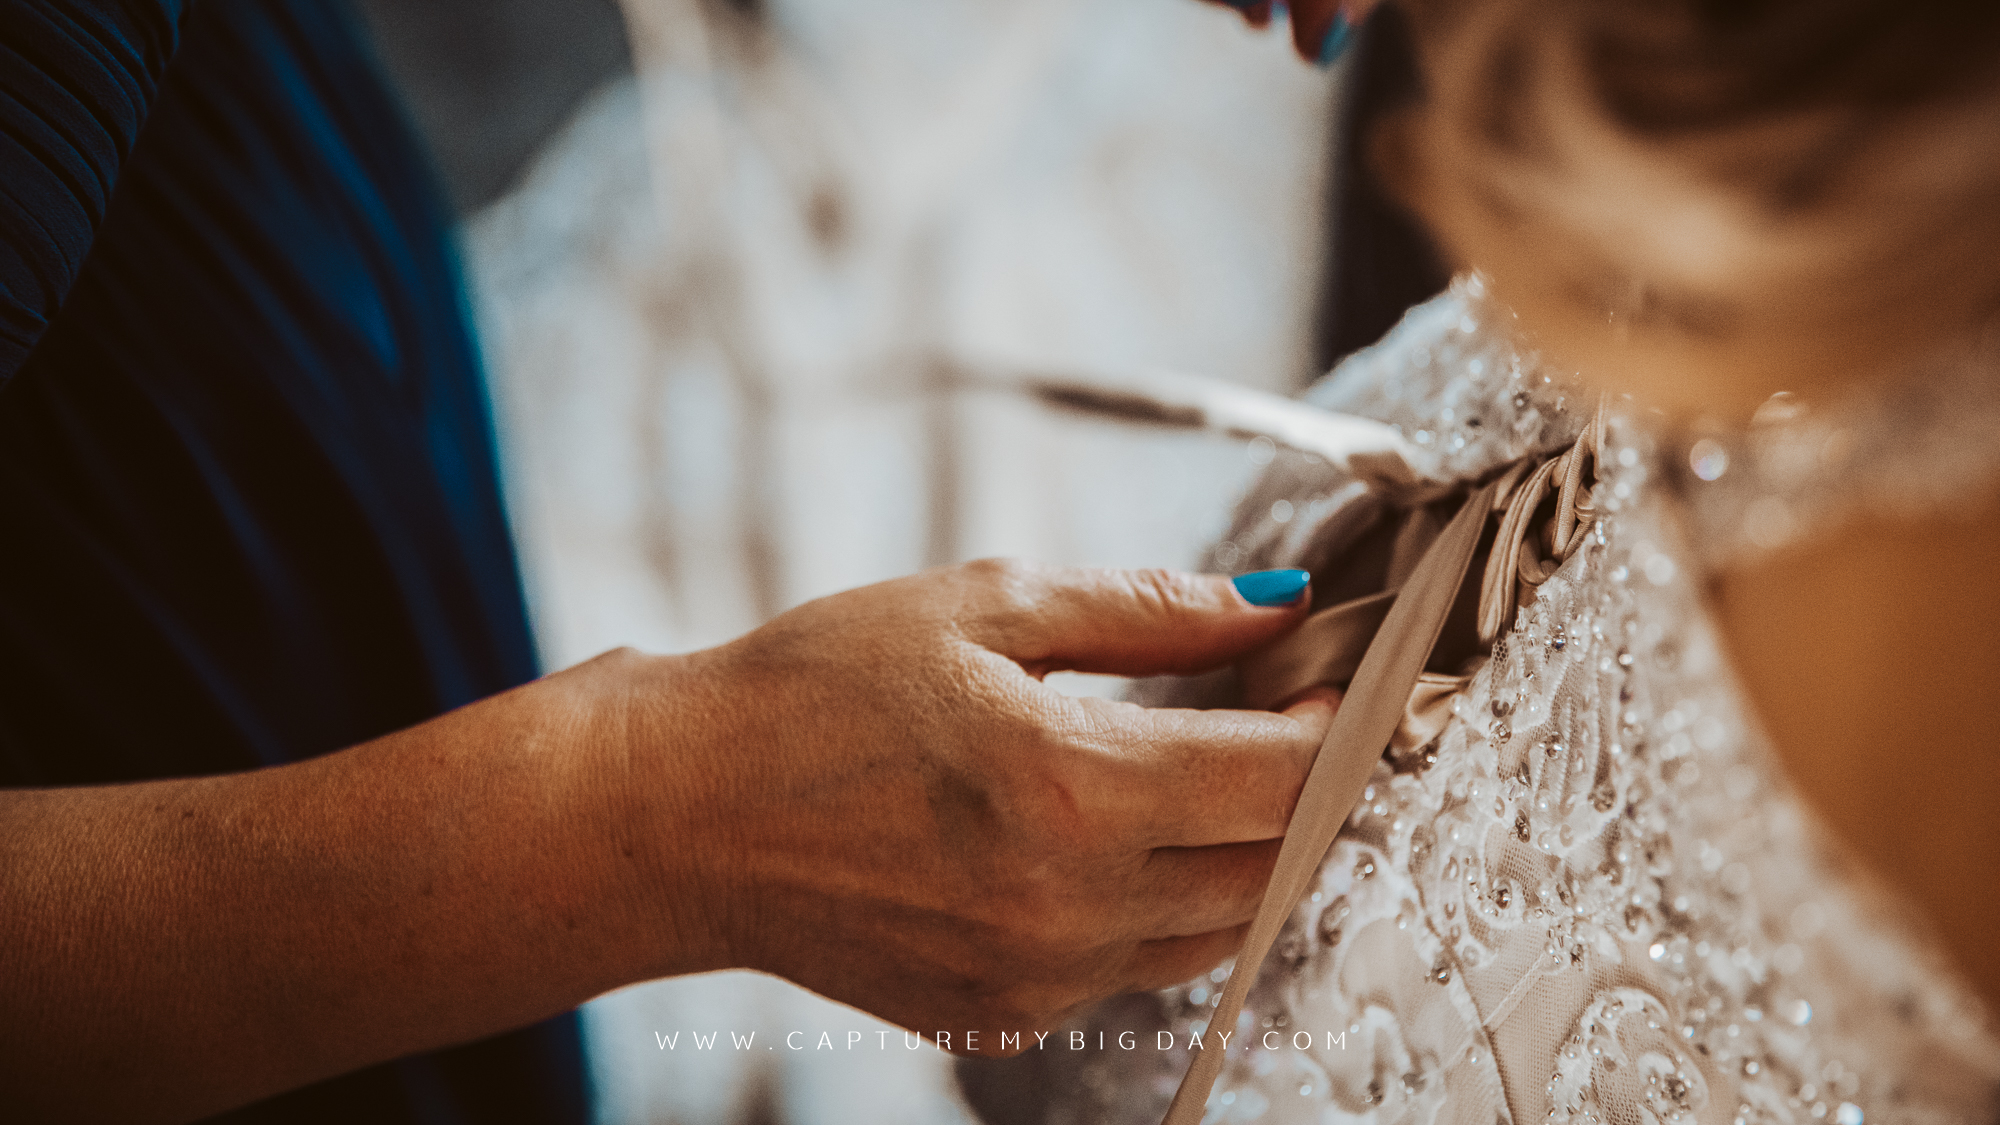 wedding dress being laced up